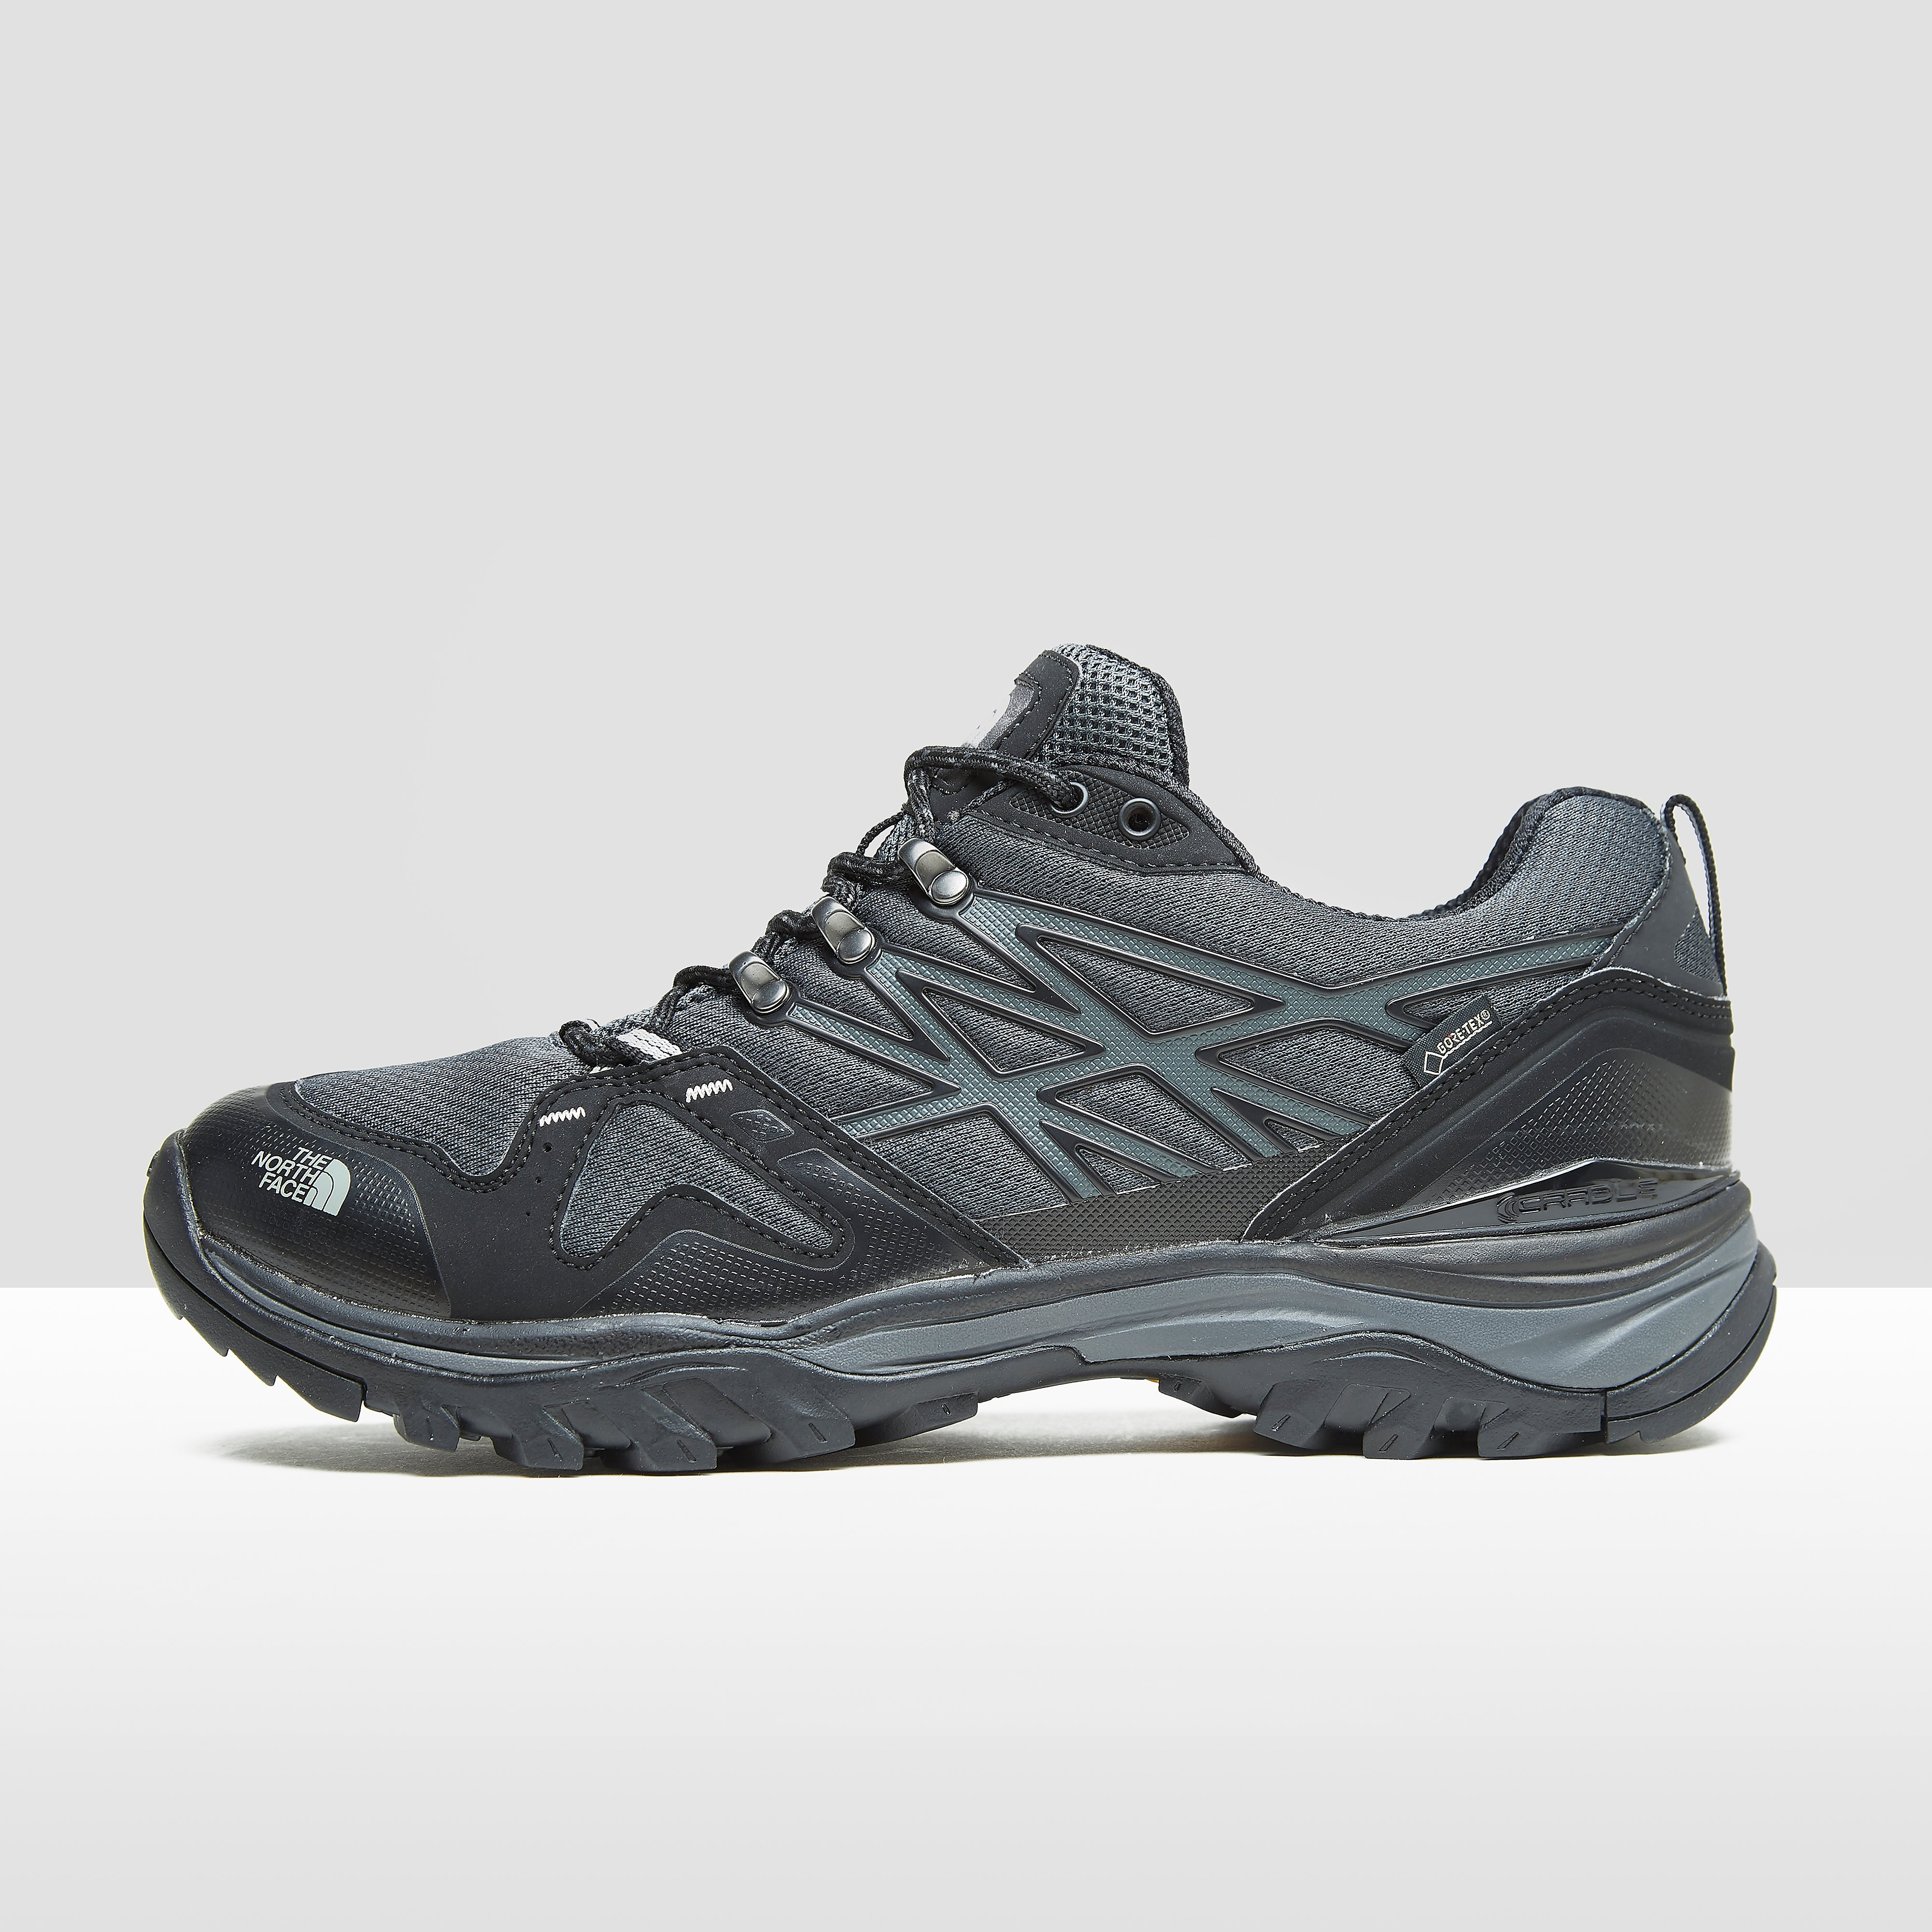 THE NORTH FACE HEDGEHOG FASTPACK GTX WANDELSCHOENEN ZWART HEREN